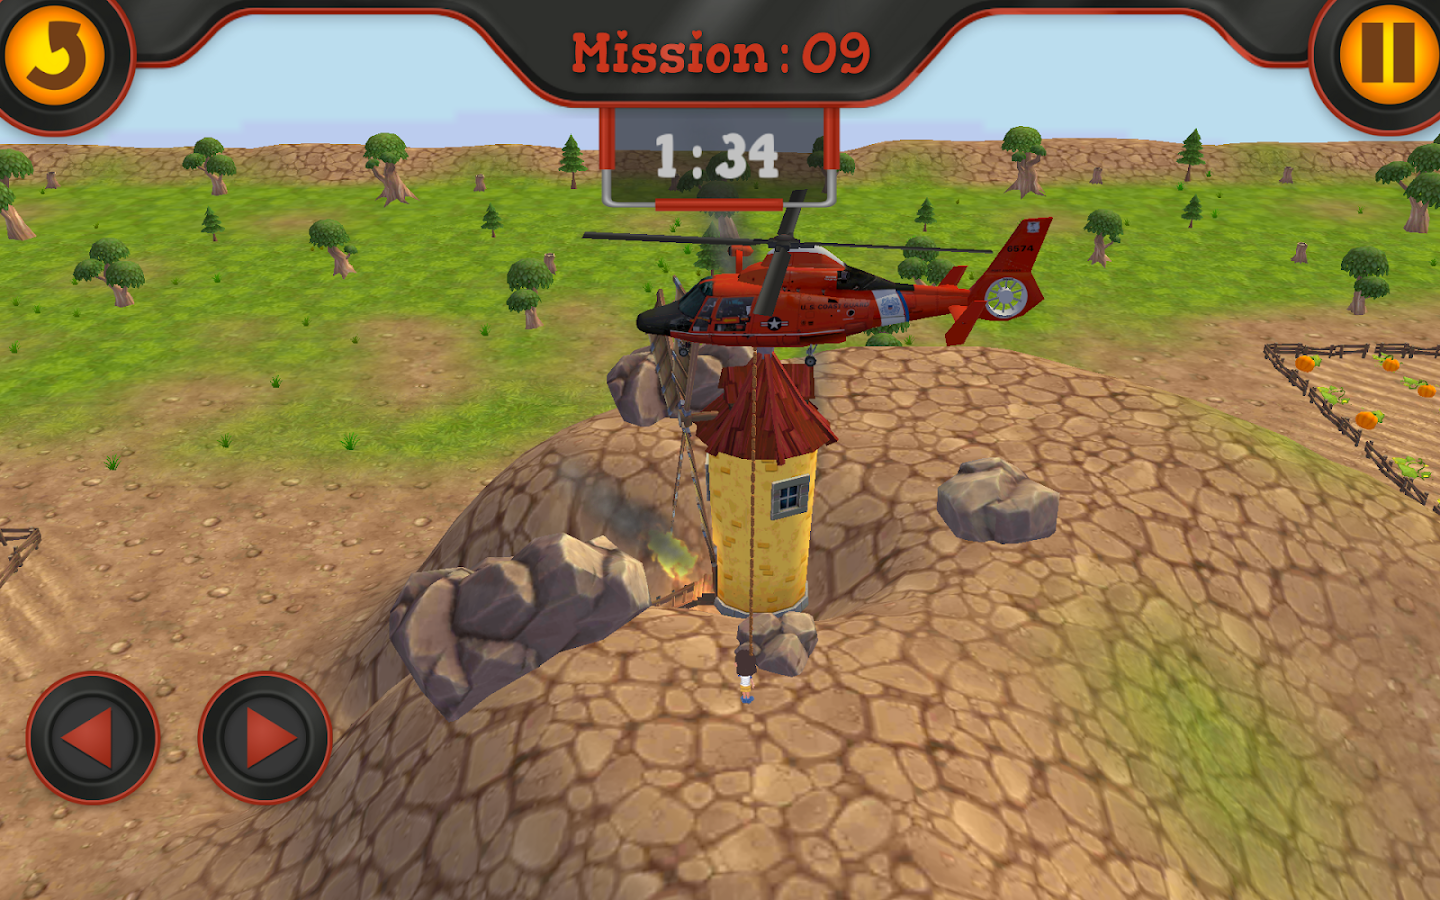 3d helicopter rescue mission game for kids free android apps